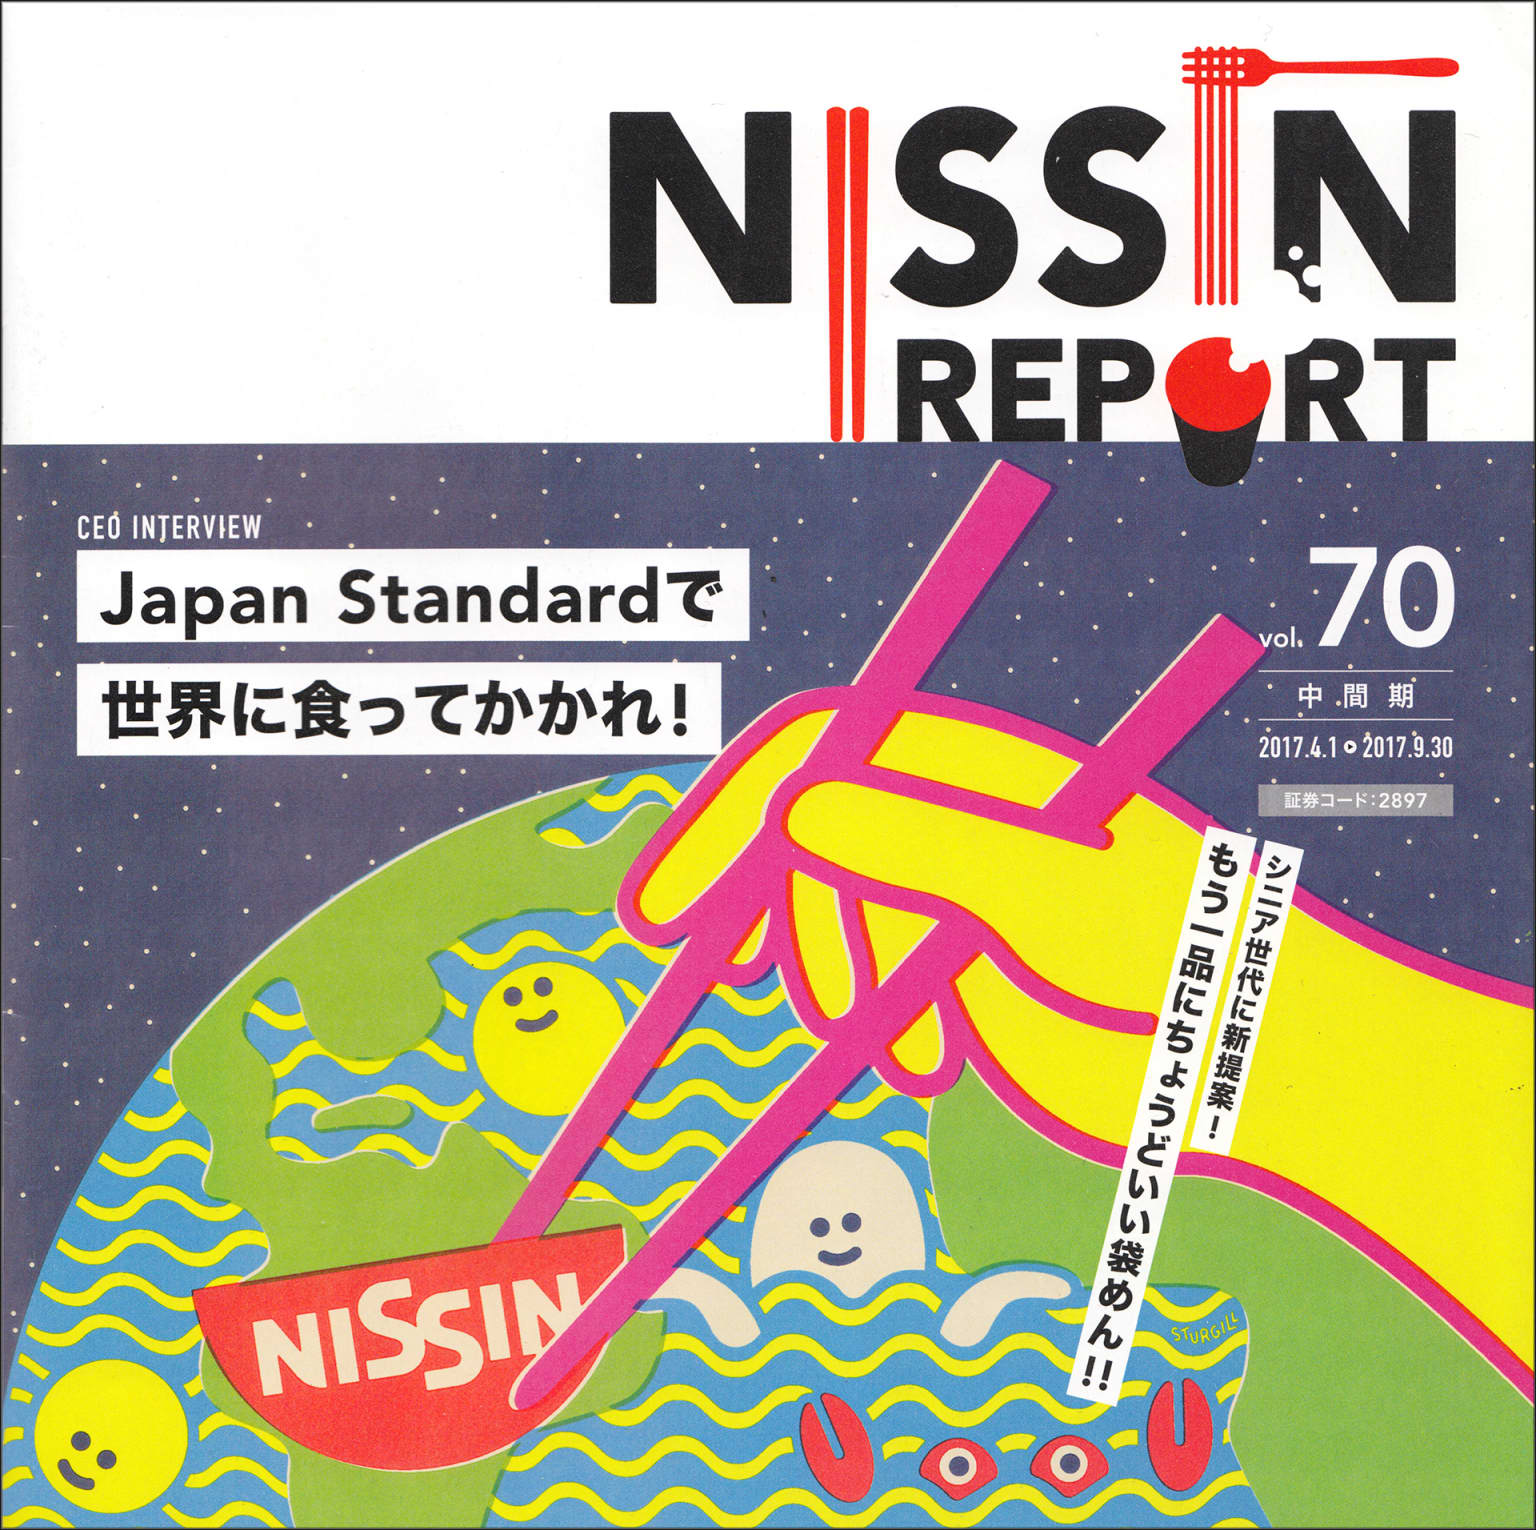 Nissin Report Magazine Cover Illustration